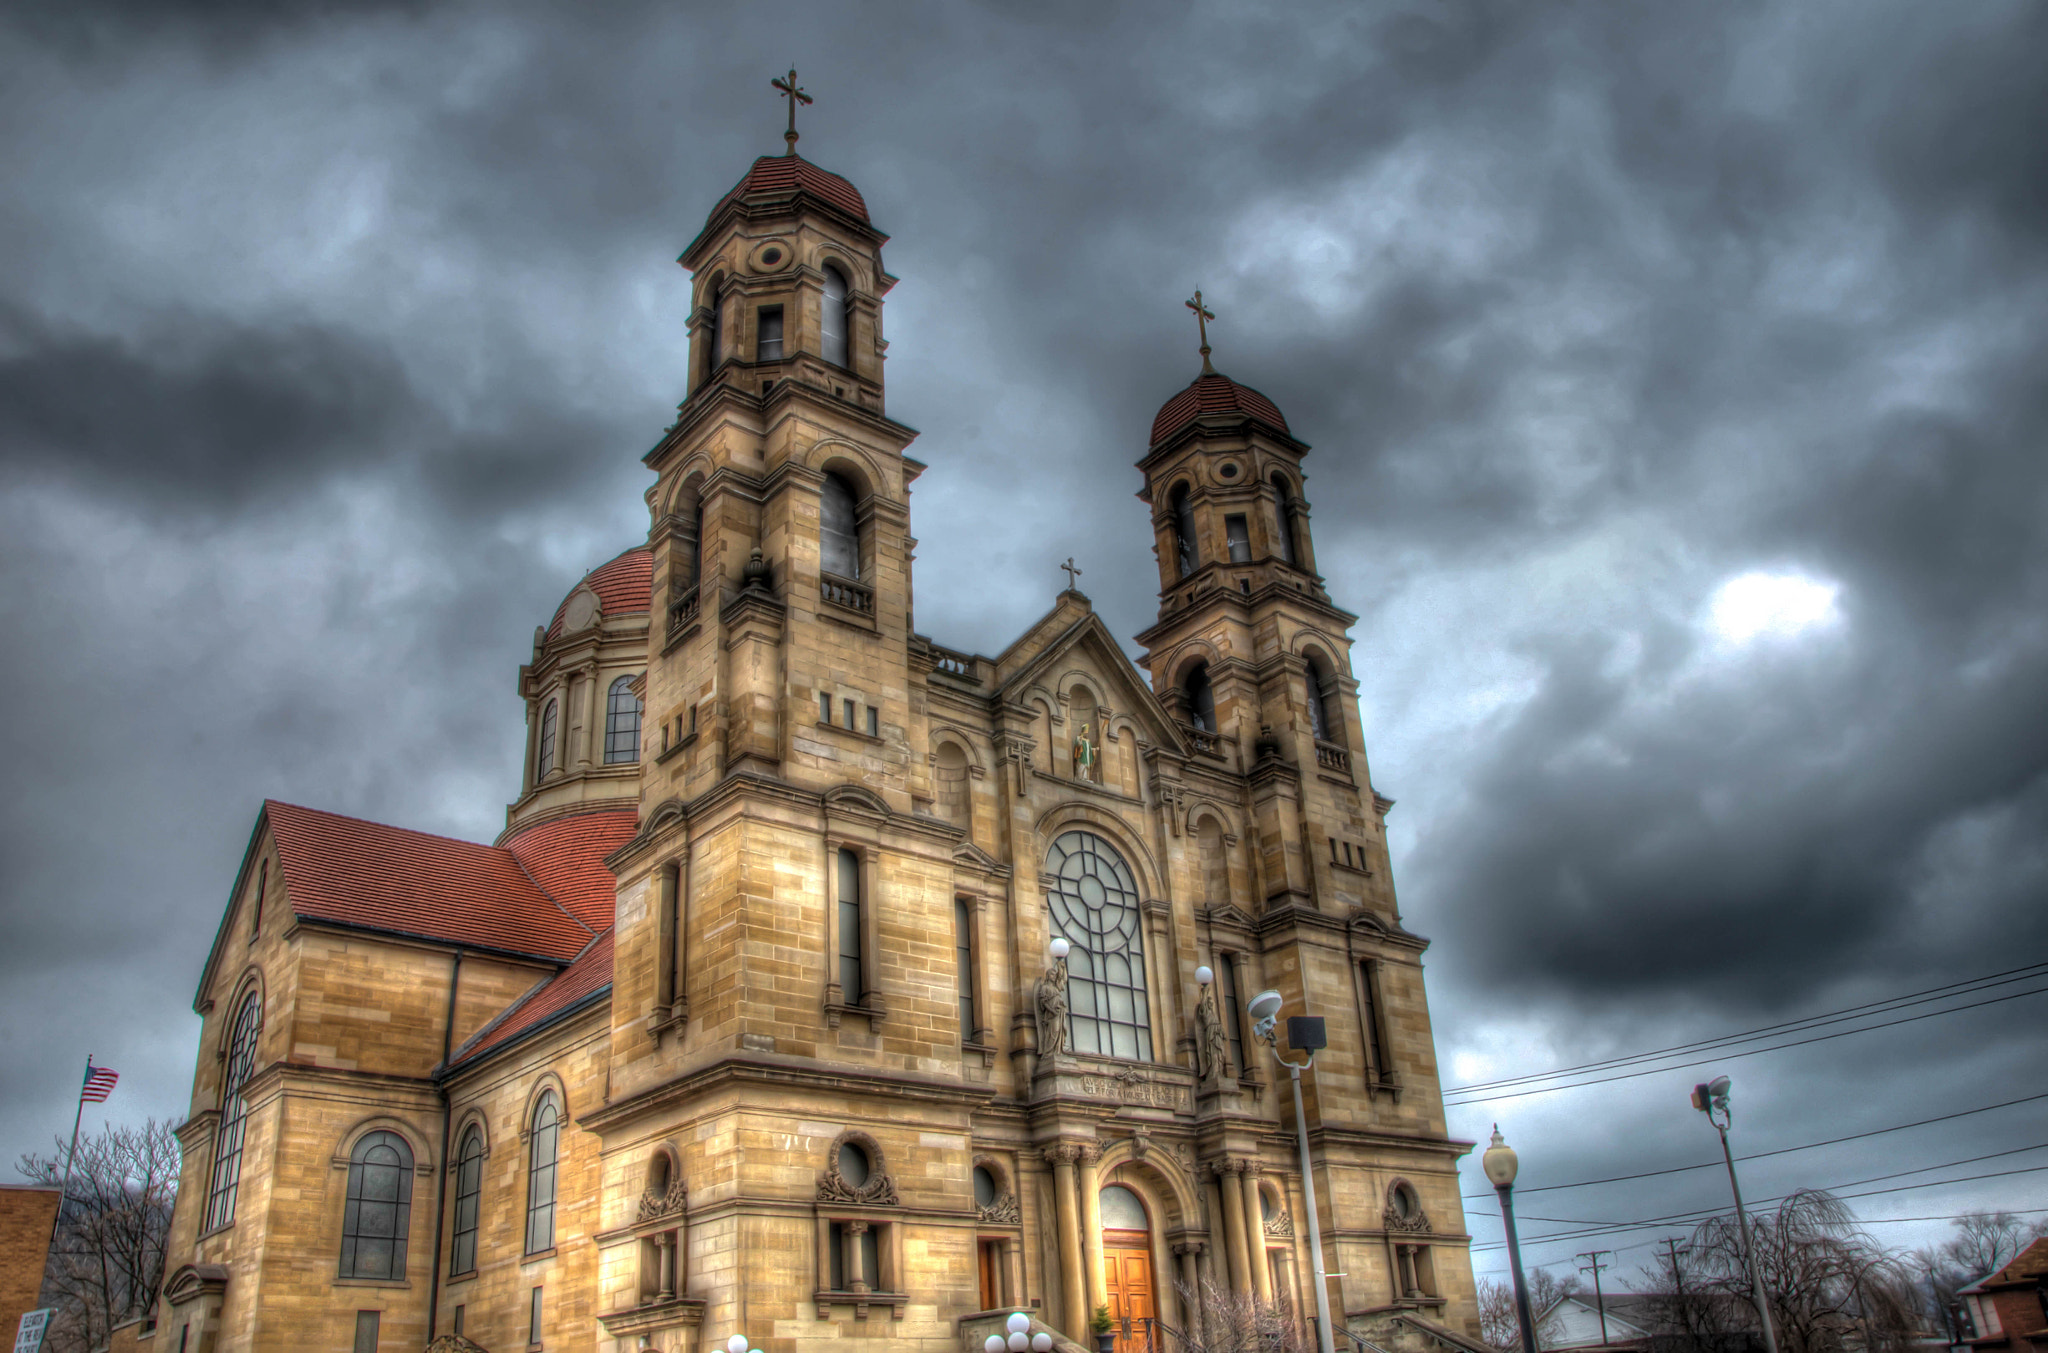 Photograph Church HDR by Jason Foose on 500px